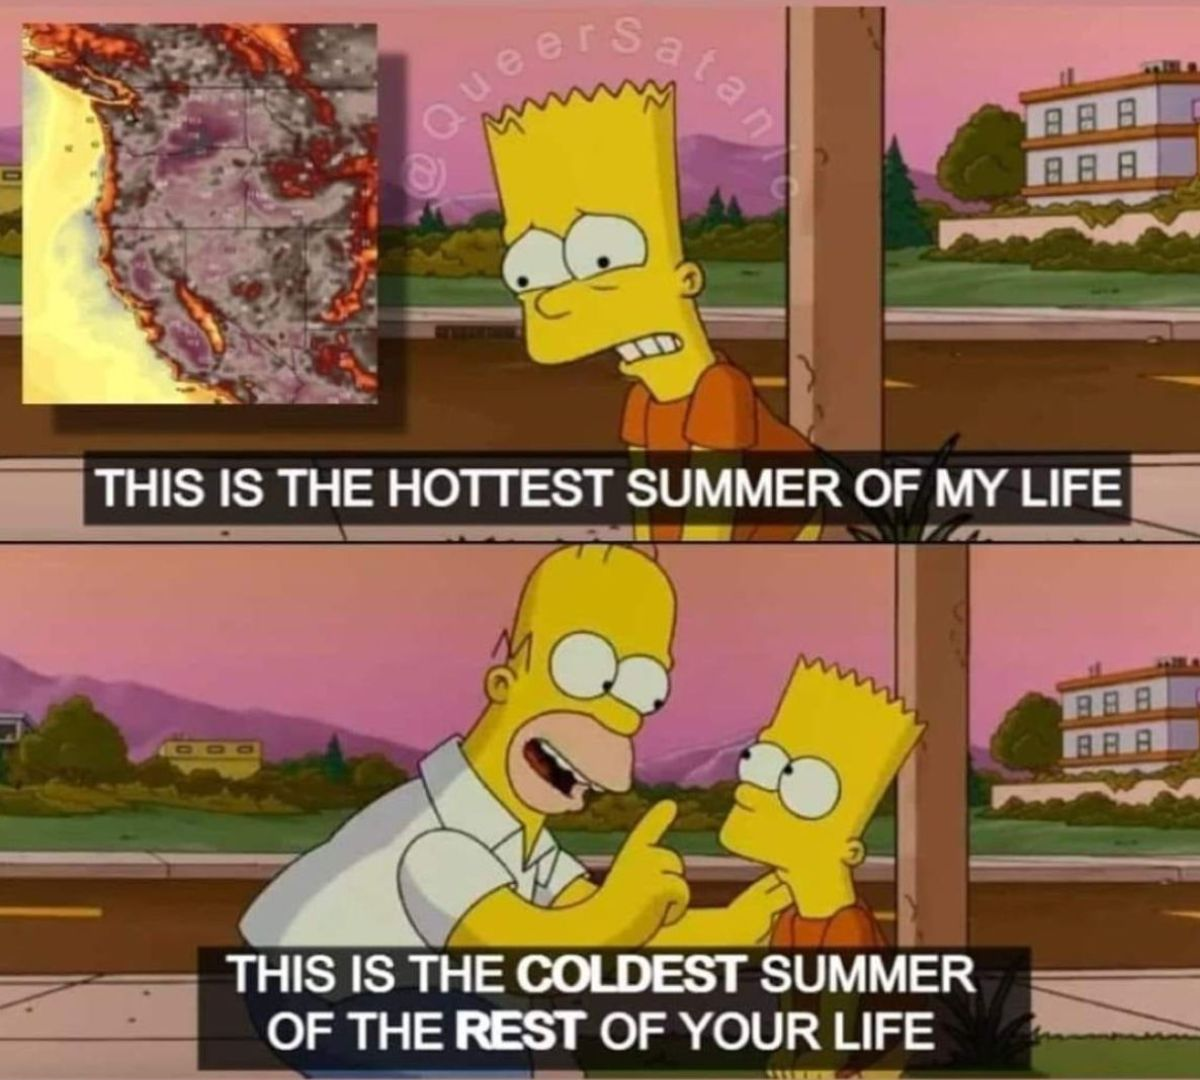 The Simpsons meme: Homer and Bart chatting heat wave